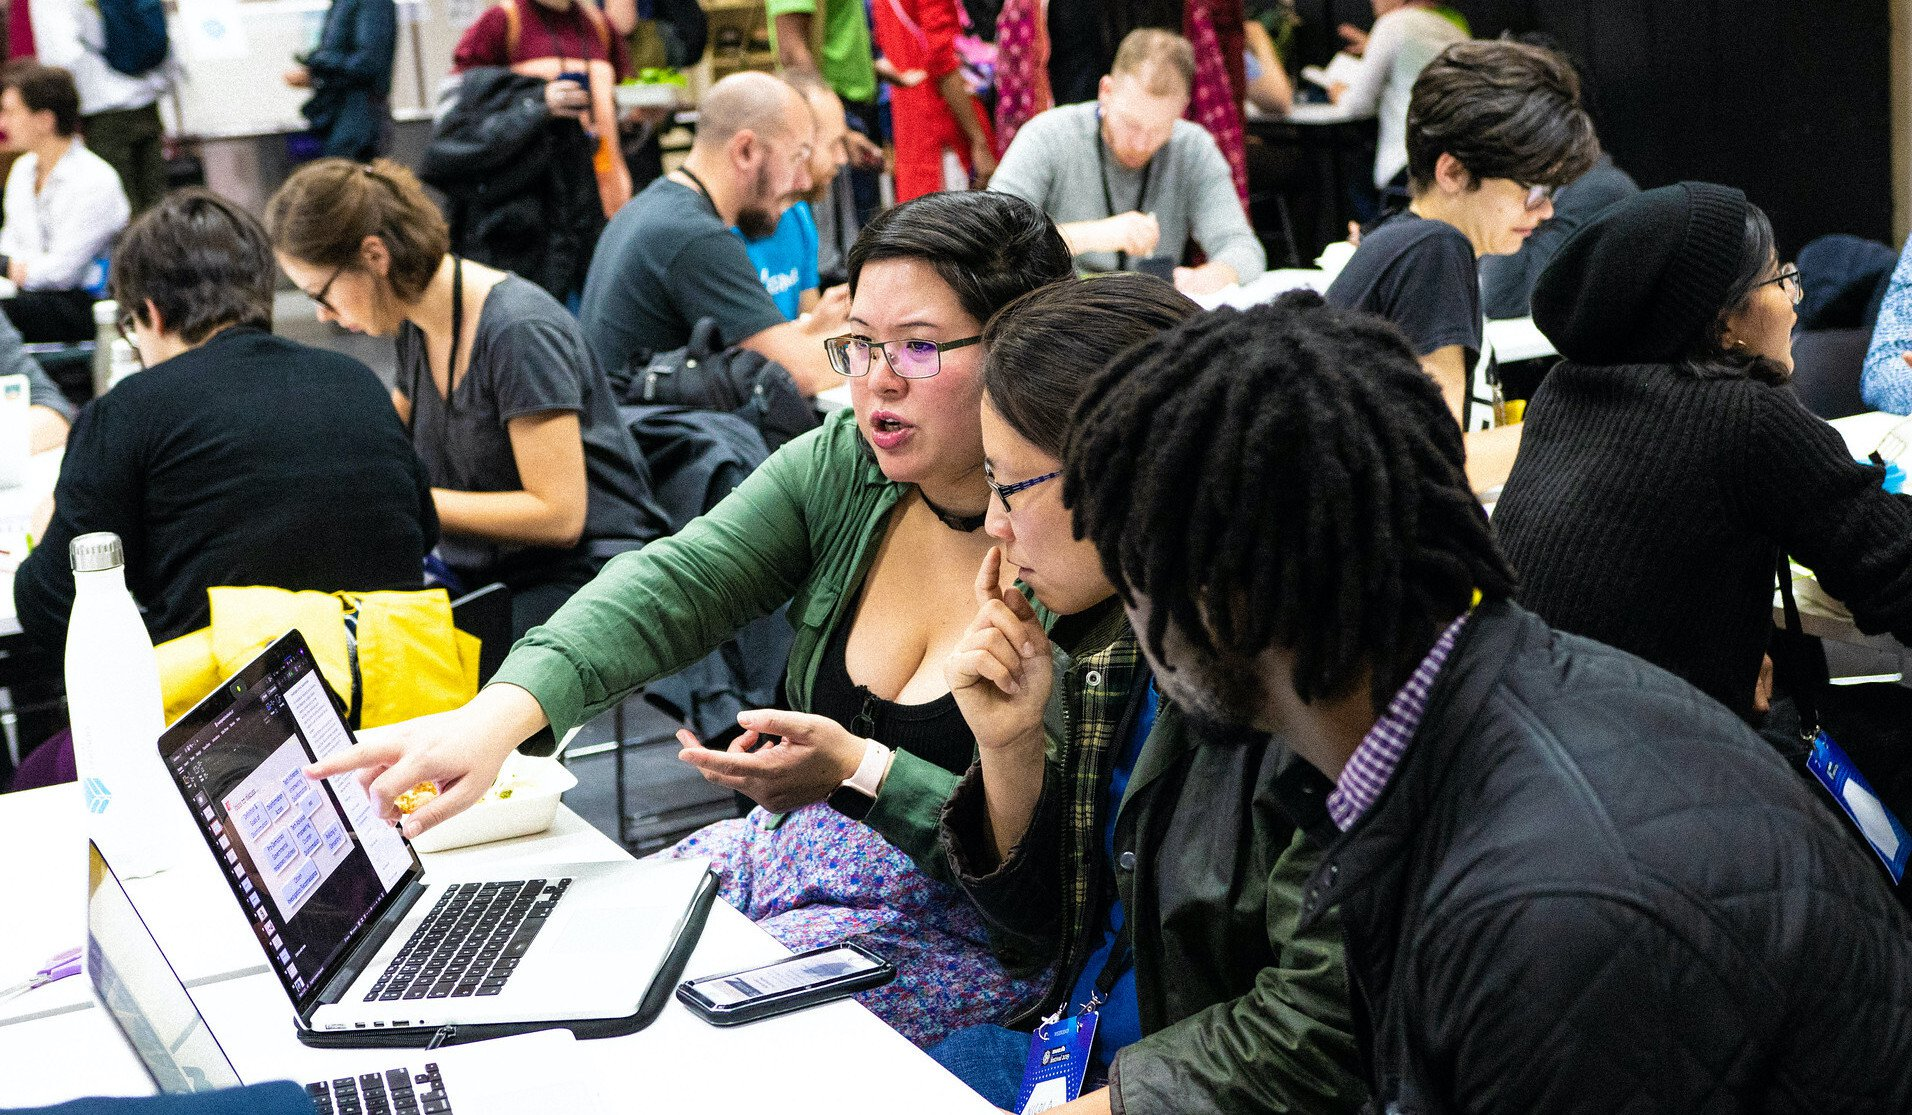 A group of participants taking part in a session at MozFest